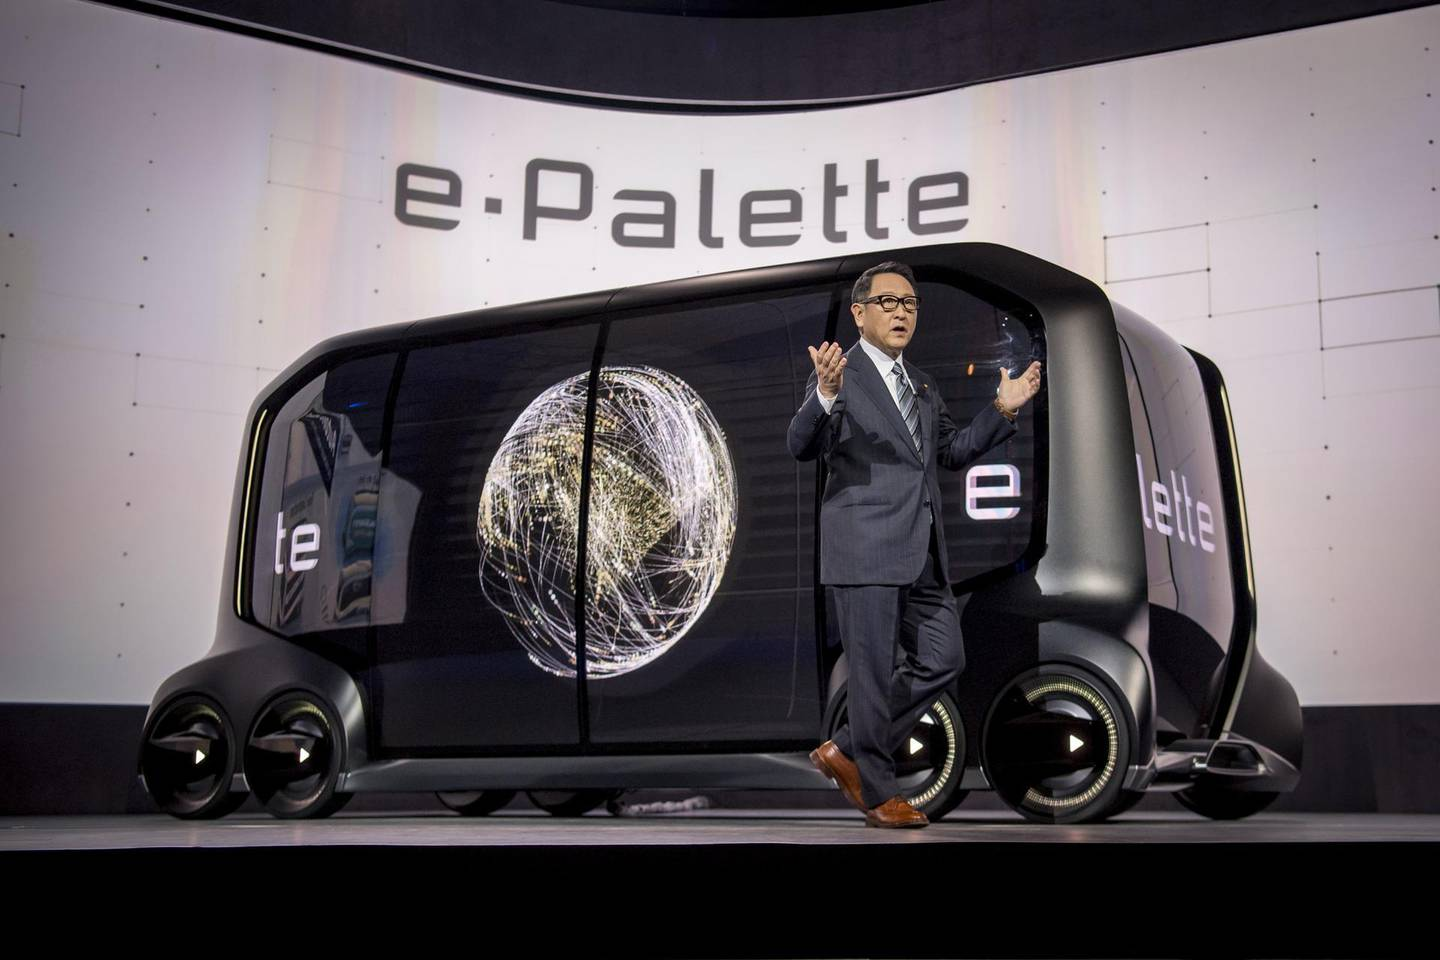 Akio Toyoda, president of Toyota Motor Corp., stands in front of the e-Palette concept vehicle while speaking during the company's press conference at the 2018 Consumer Electronics Show (CES) in Las Vegas, Nevada, U.S., on Monday, Jan. 8, 2018. Toyota Motor Corp., trying to transform itself into a leader of the new driverless economy, unveiled both the concept vehicle and the big-name partners to make it a reality. Photographer: David Paul Morris/Bloomberg